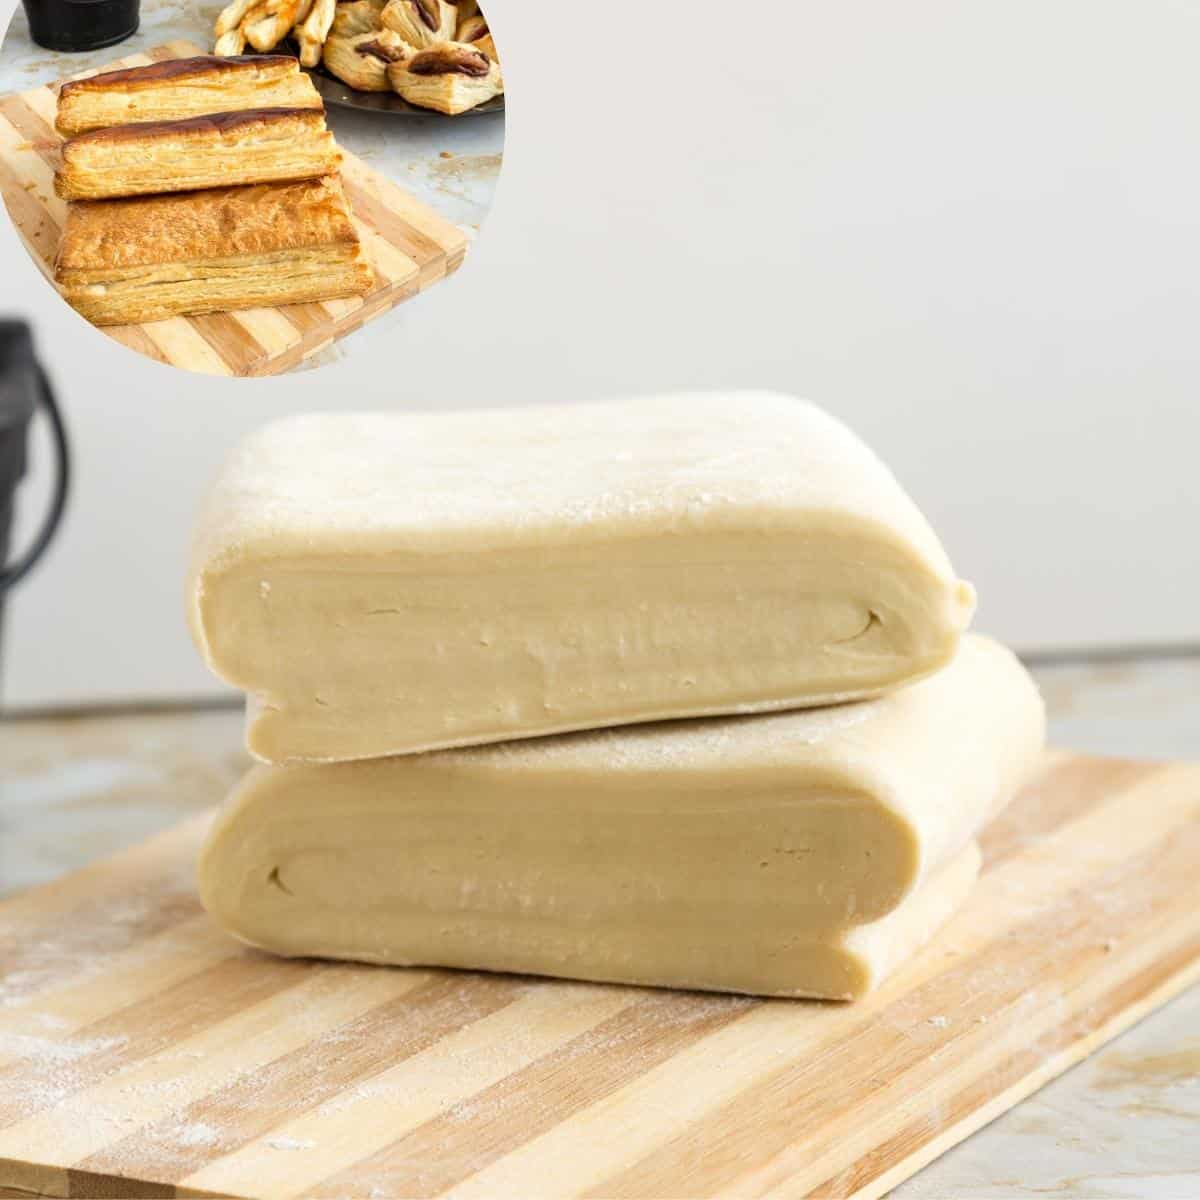 Puff pastry on a wooden board.